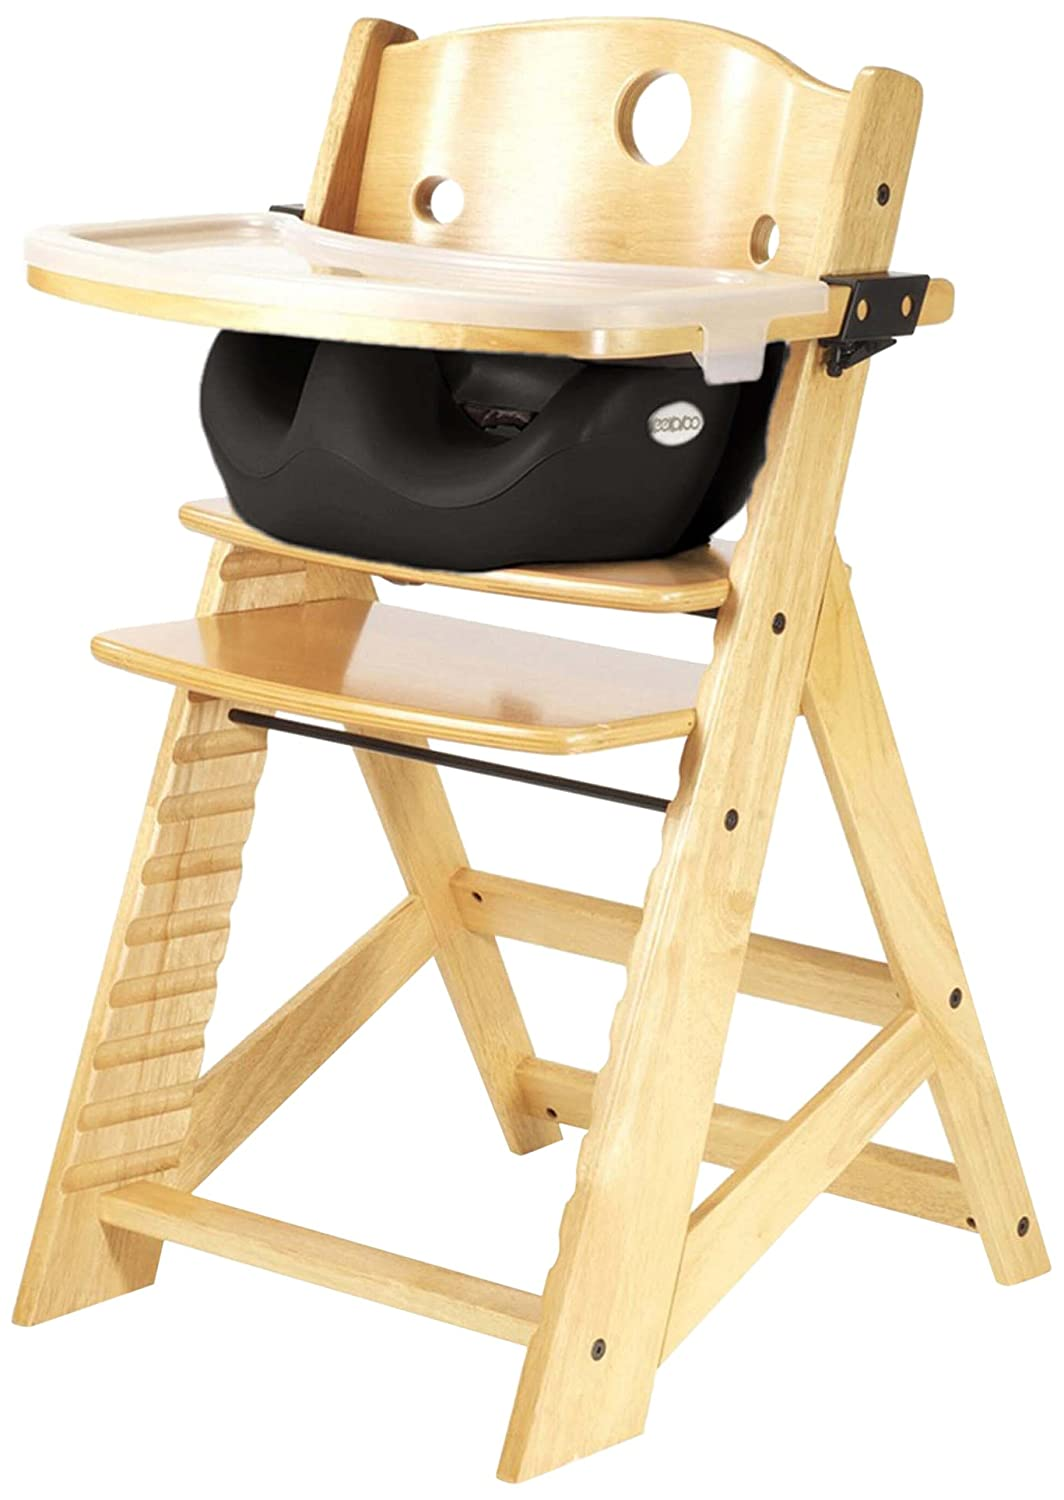 Product besides Height Adjustable Wooden High Chair together with 545331031 as well Keekaroo Wooden Height Right Kid besides Keekaroo Height Right High Chair Infant Insert Tray Natural Black. on keekaroo height right high chair and tray